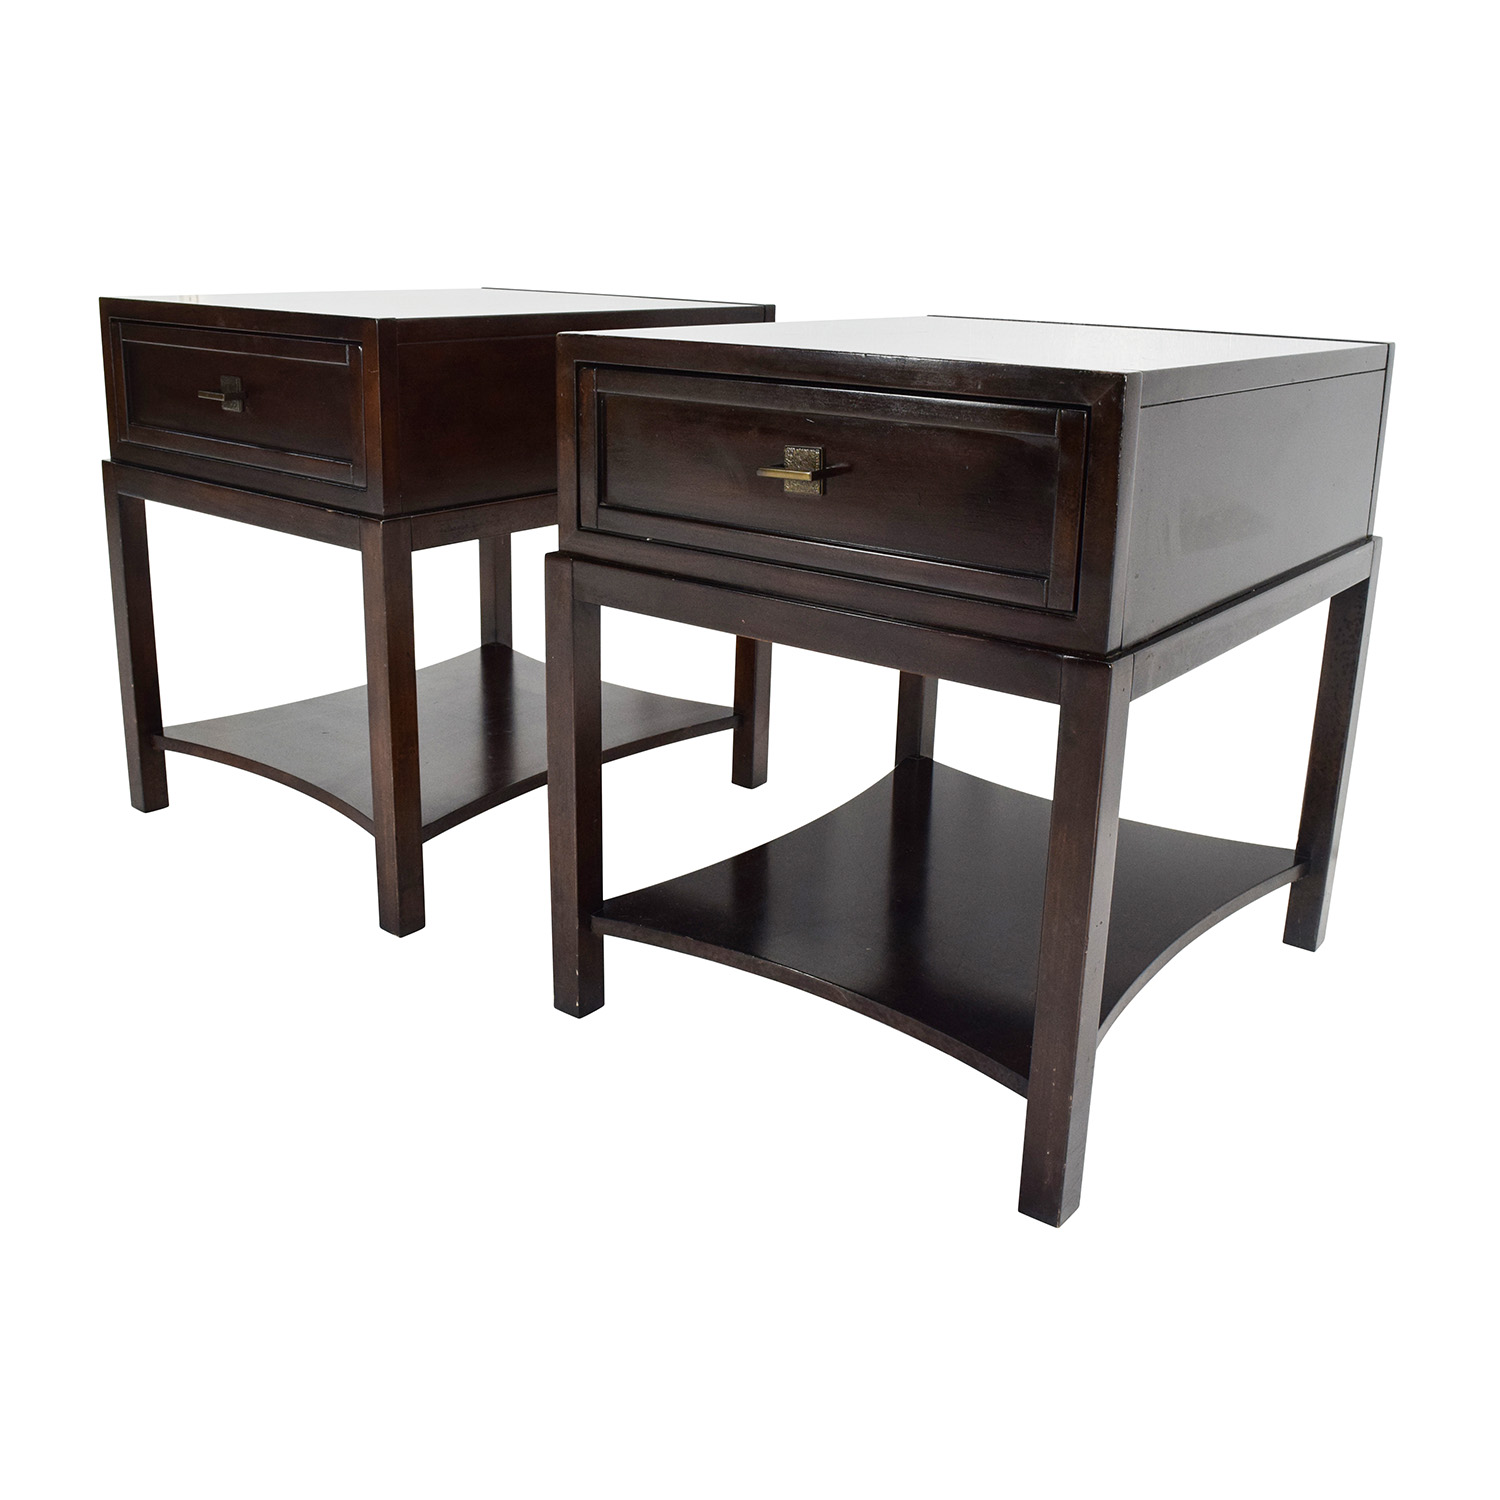 drexel sofa table cleaning semi aniline leather console country french by